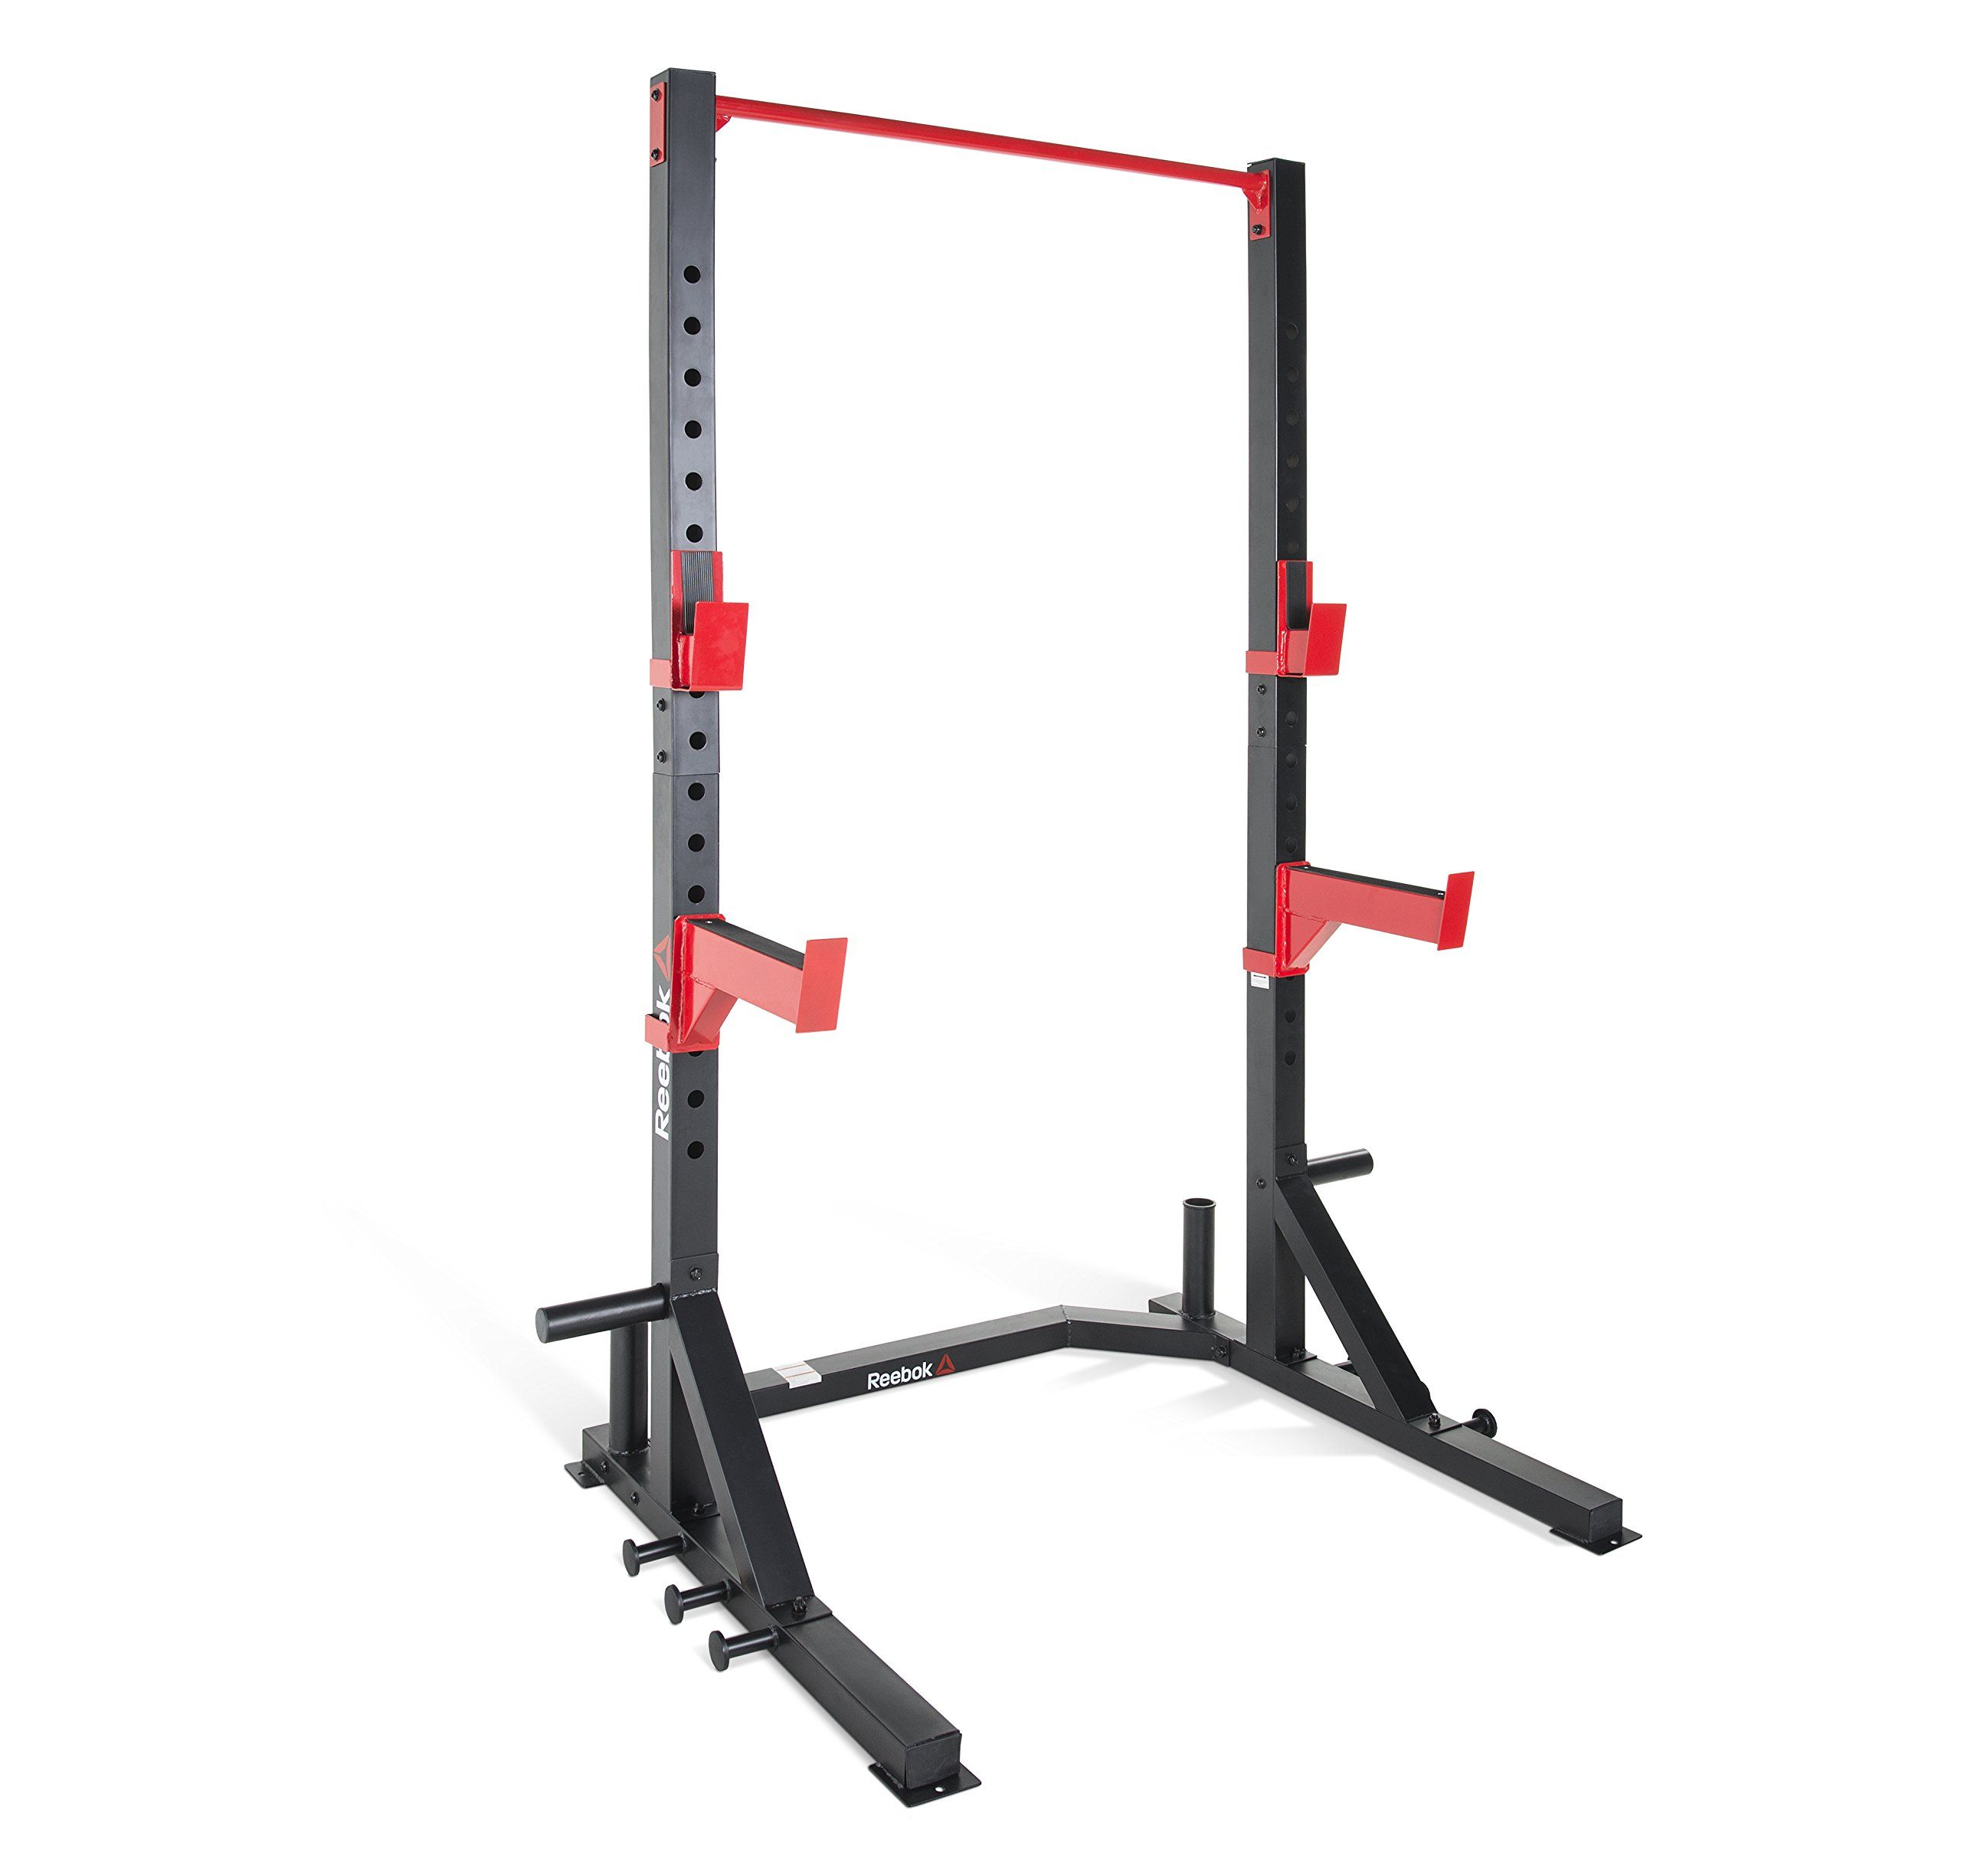 Weight Capacity 1,000 LBS Commercial Grade XMark Multi-Function Adjustable Squat Rack